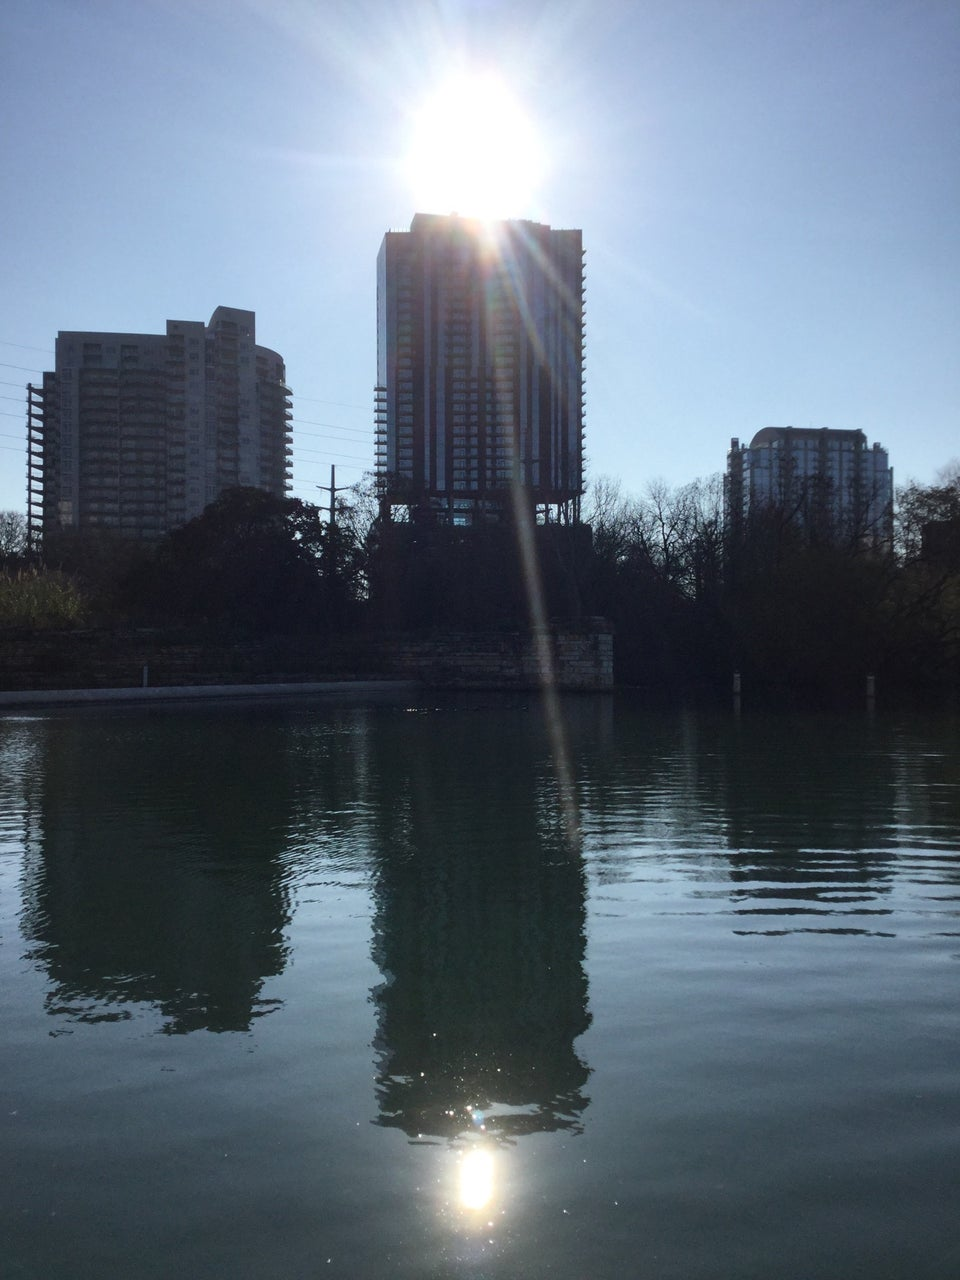 The sun shining brightly in a clear sky over buildings above the river, and reflected in the river as well, in Austin Texas.